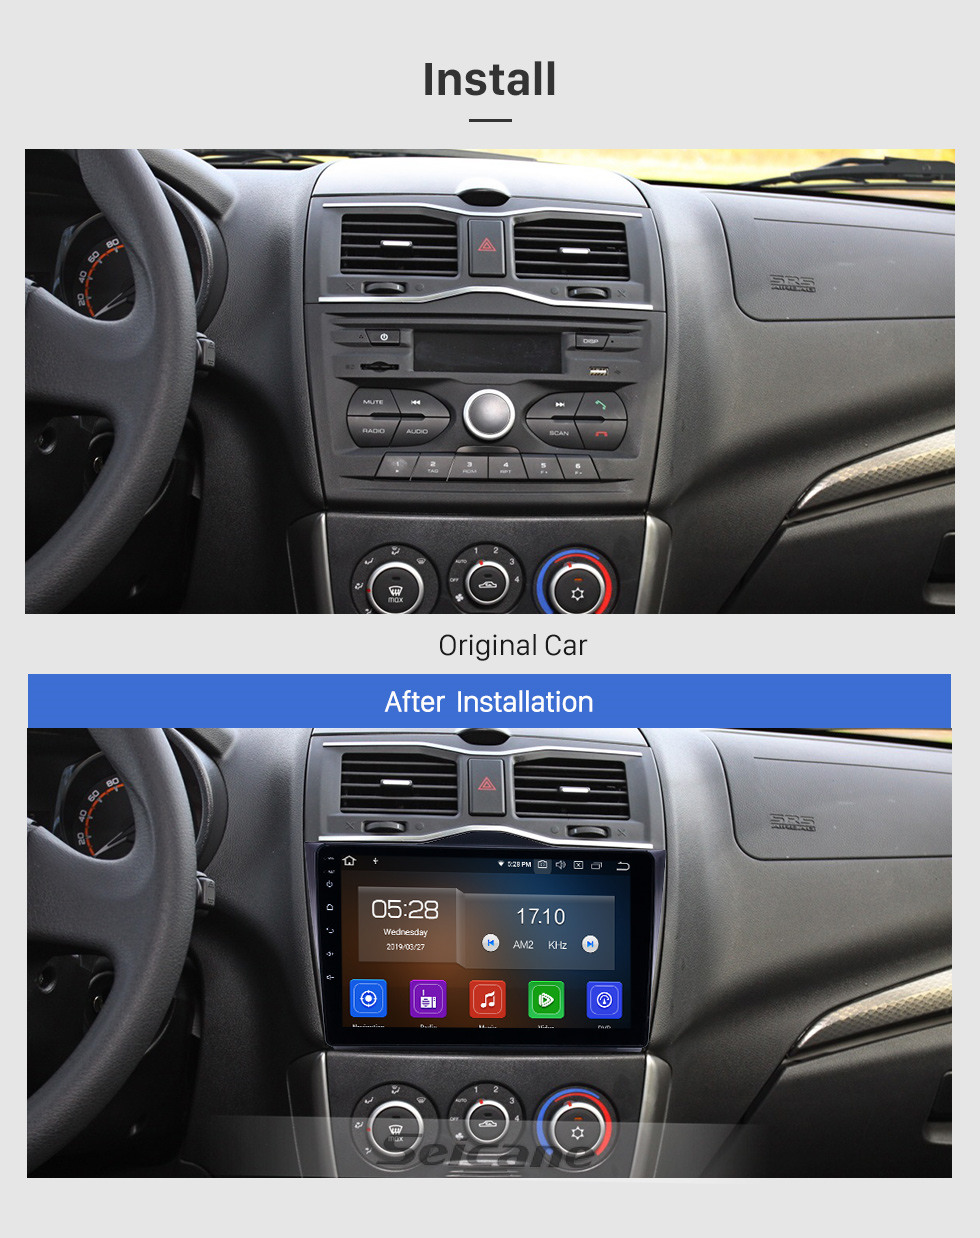 Seicane Android 10.0 9 inch GPS Navigation Radio for 2018-2019 Lada Granta with HD Touchscreen Carplay Bluetooth support TPMS Digital TV